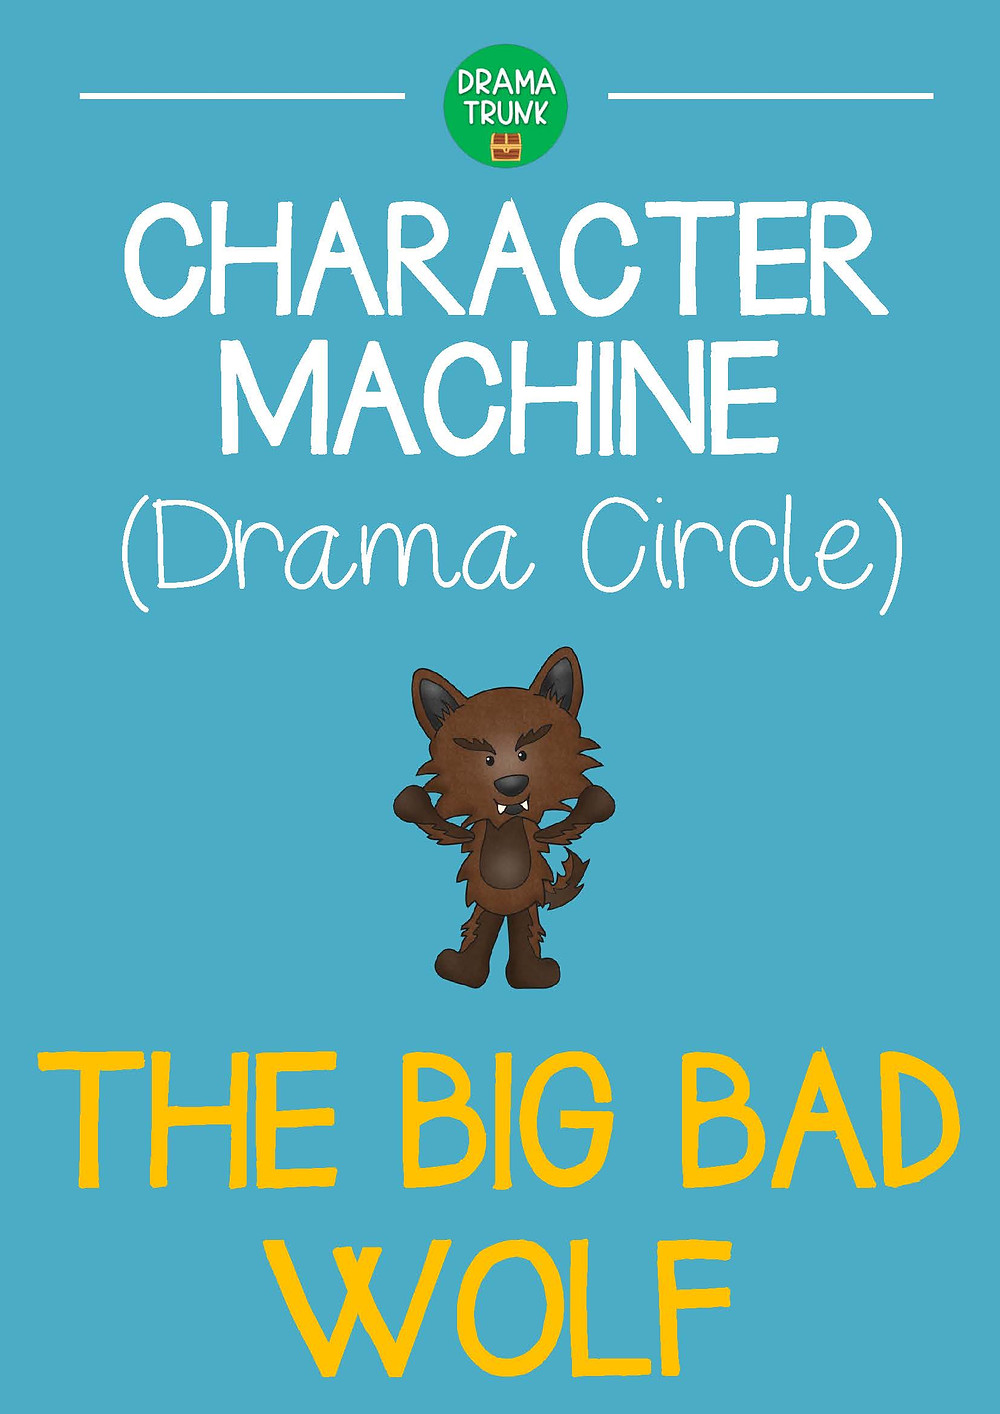 Big Bad Wolf Drama Circle Readers Theatre Acting Script for Kids